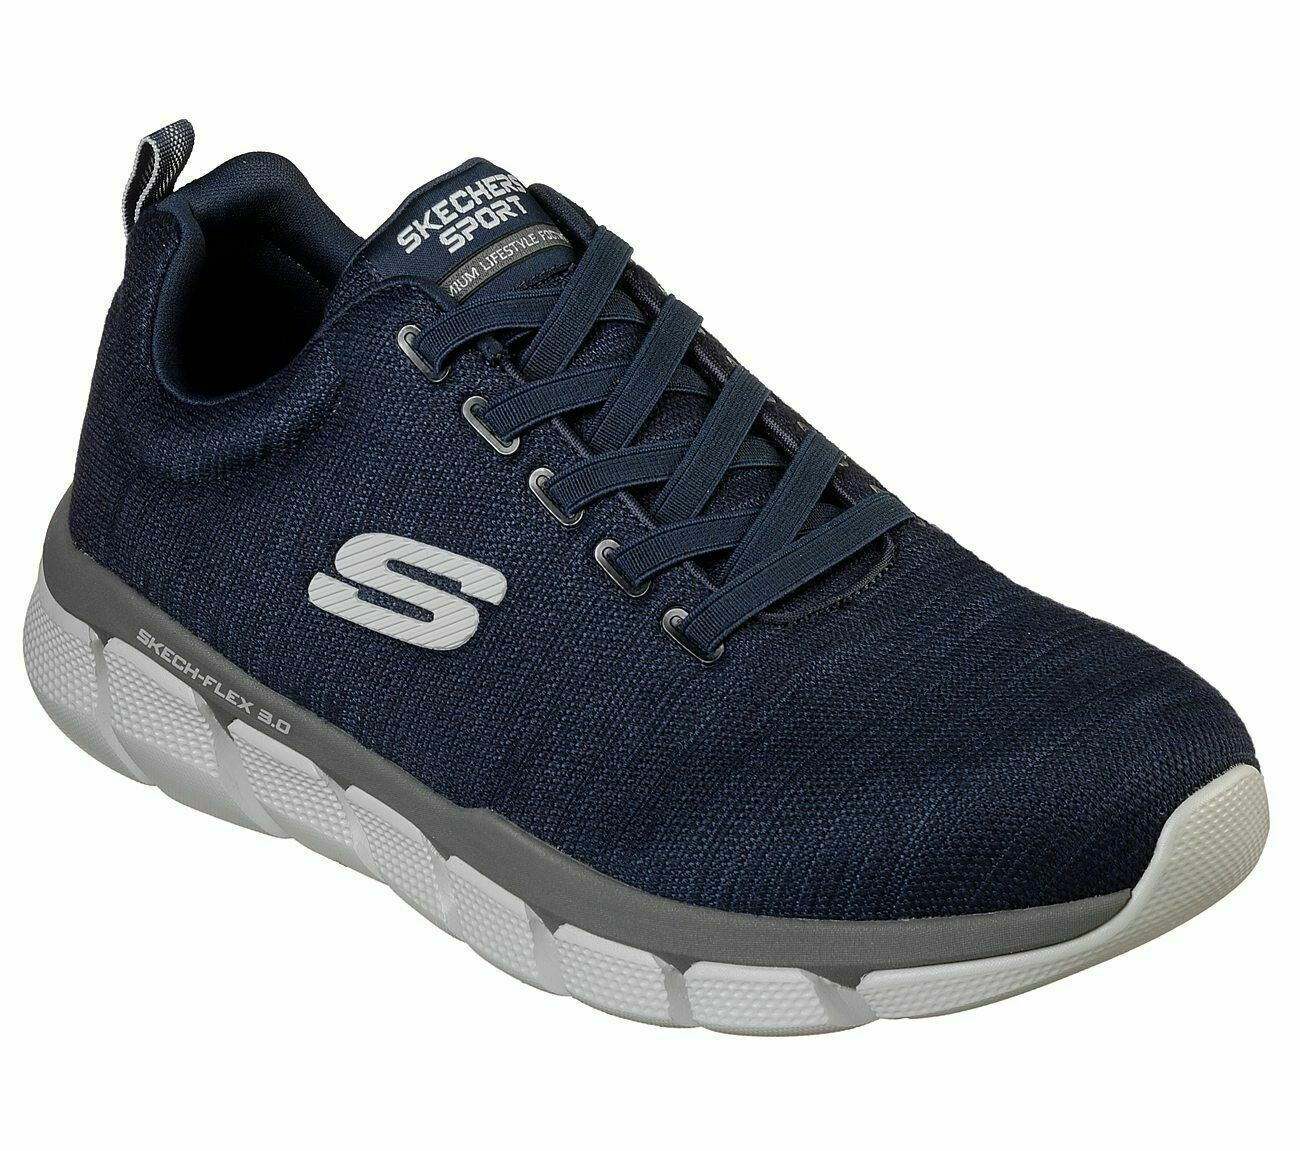 Memory Foam  Extra Wide Width Navy Skechers shoes Men's Mesh Sport Comfort 52843